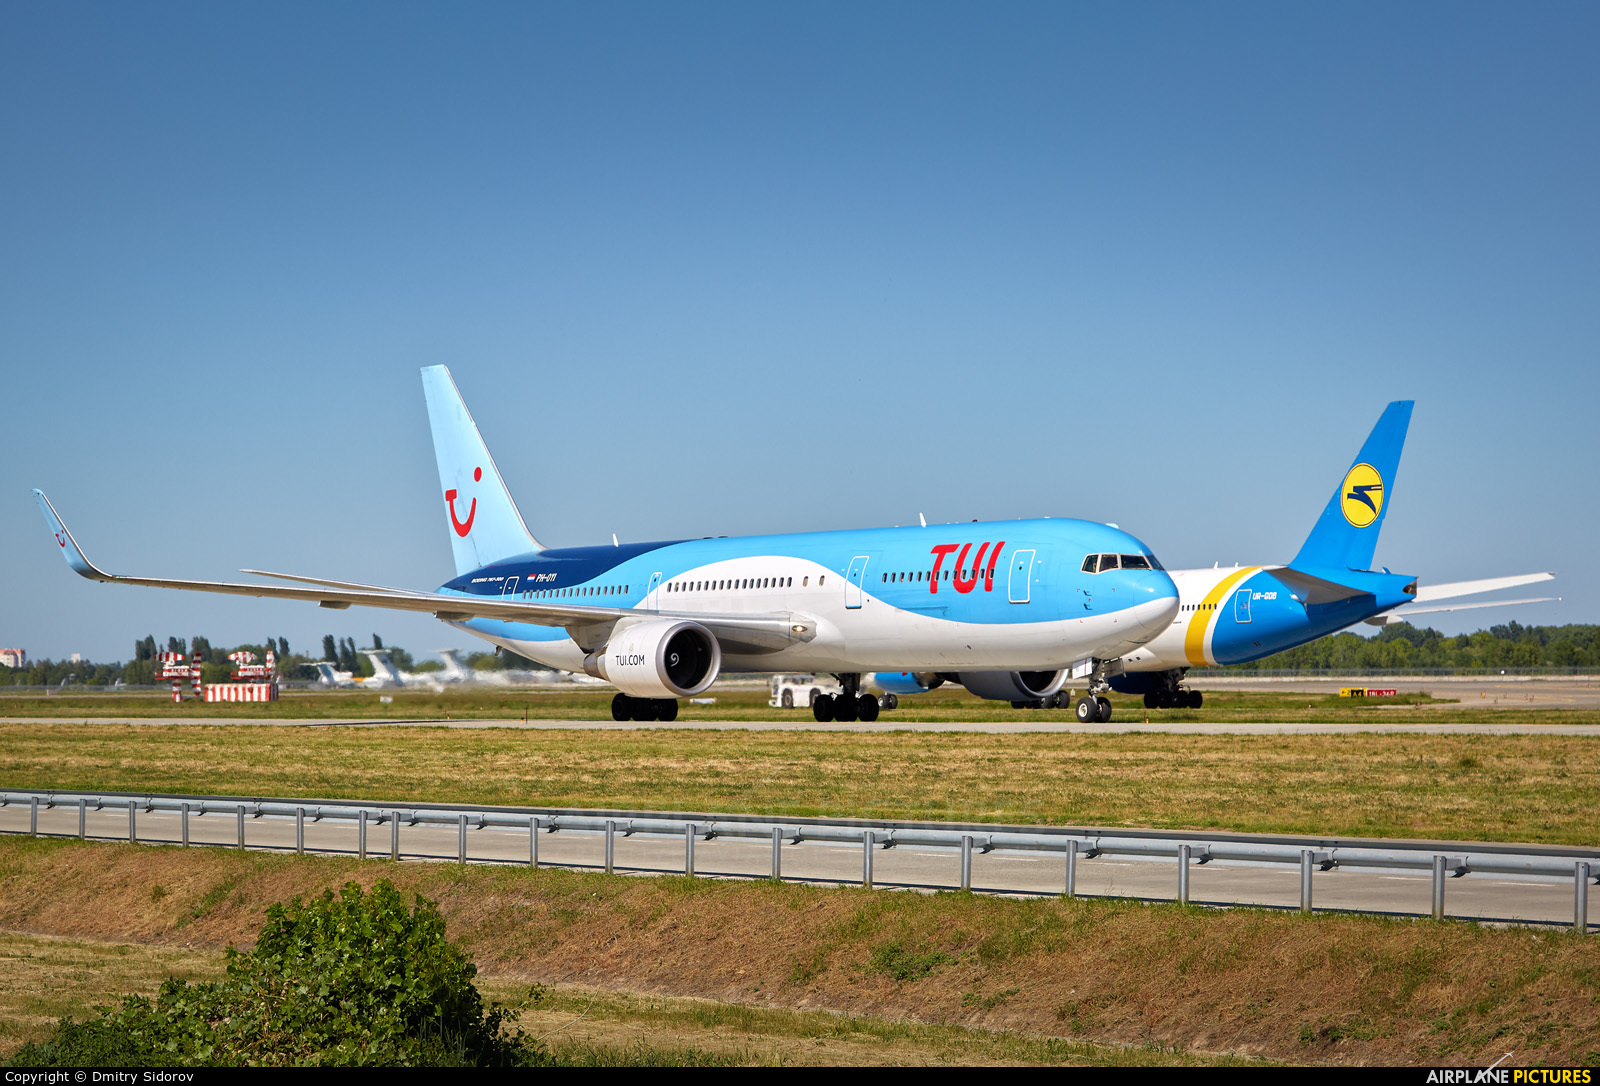 TUI Airlines Netherlands PH-OYI aircraft at Kiev - Borispol